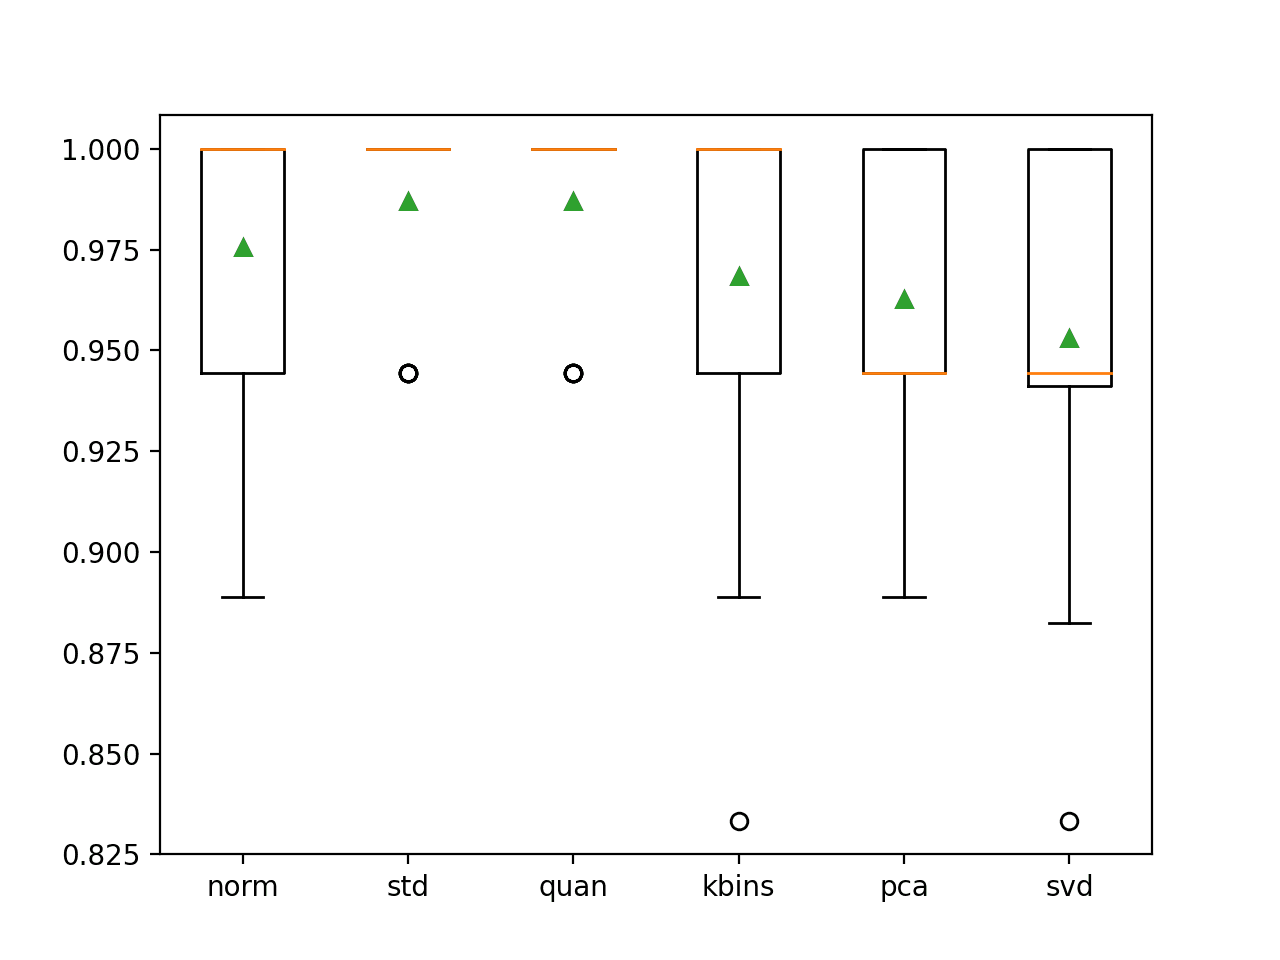 Box and Whisker Plot of Classification Accuracy for Different Data Transforms on the Wine Classification Dataset